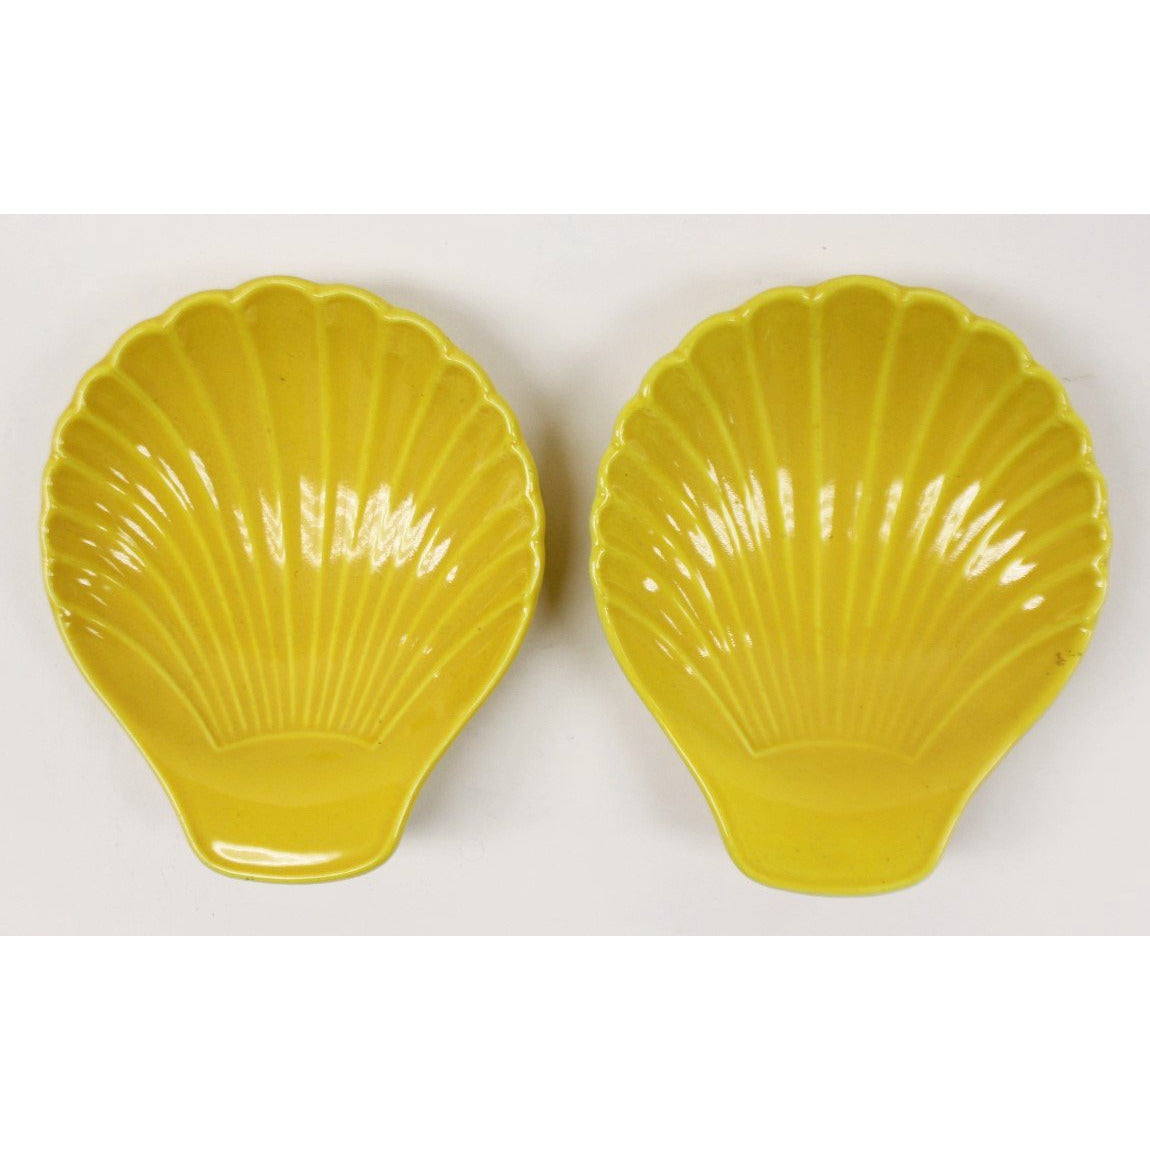 Pair of Scallop Shell Ashtrays